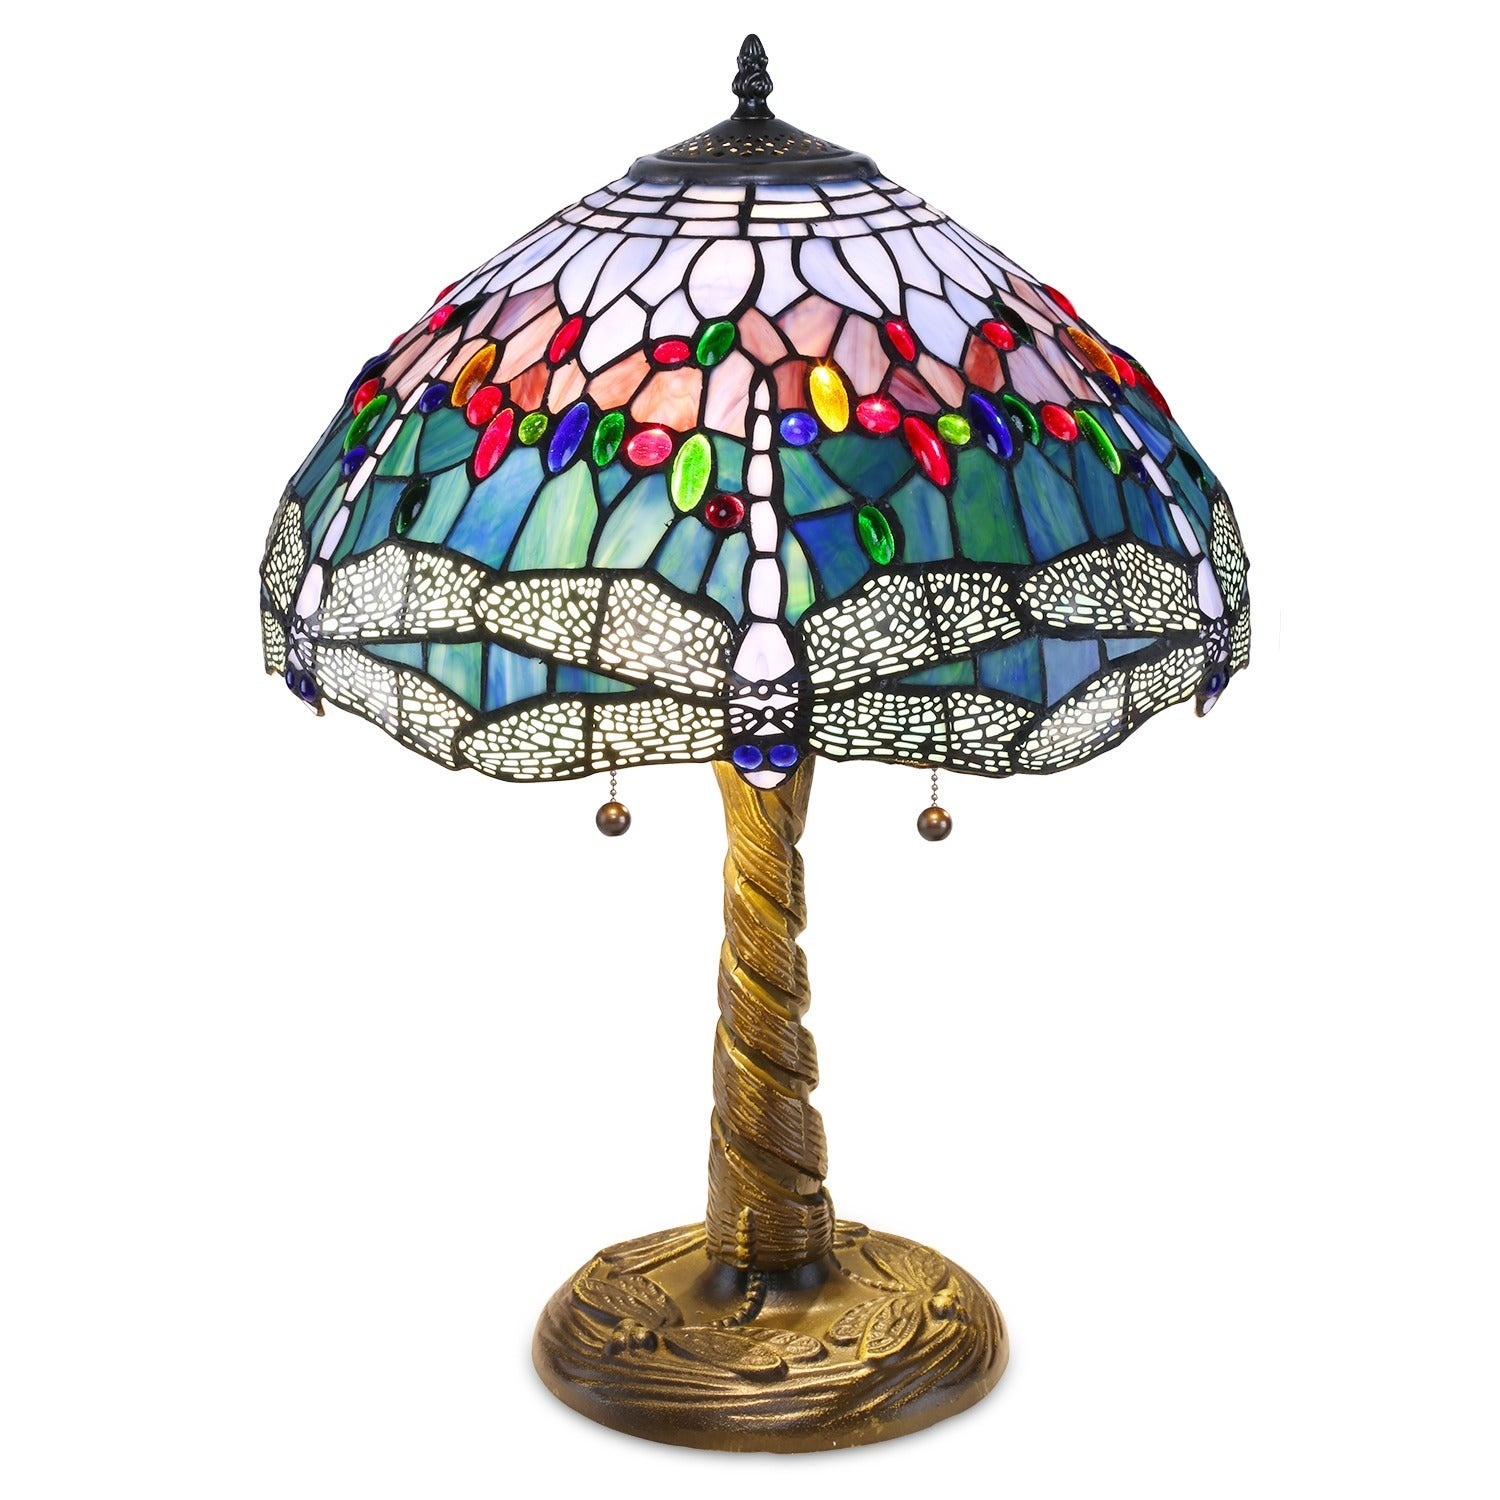 Tiffany style blue dragonfly table lamp free shipping today tiffany style blue dragonfly table lamp free shipping today overstock 10443274 aloadofball Images